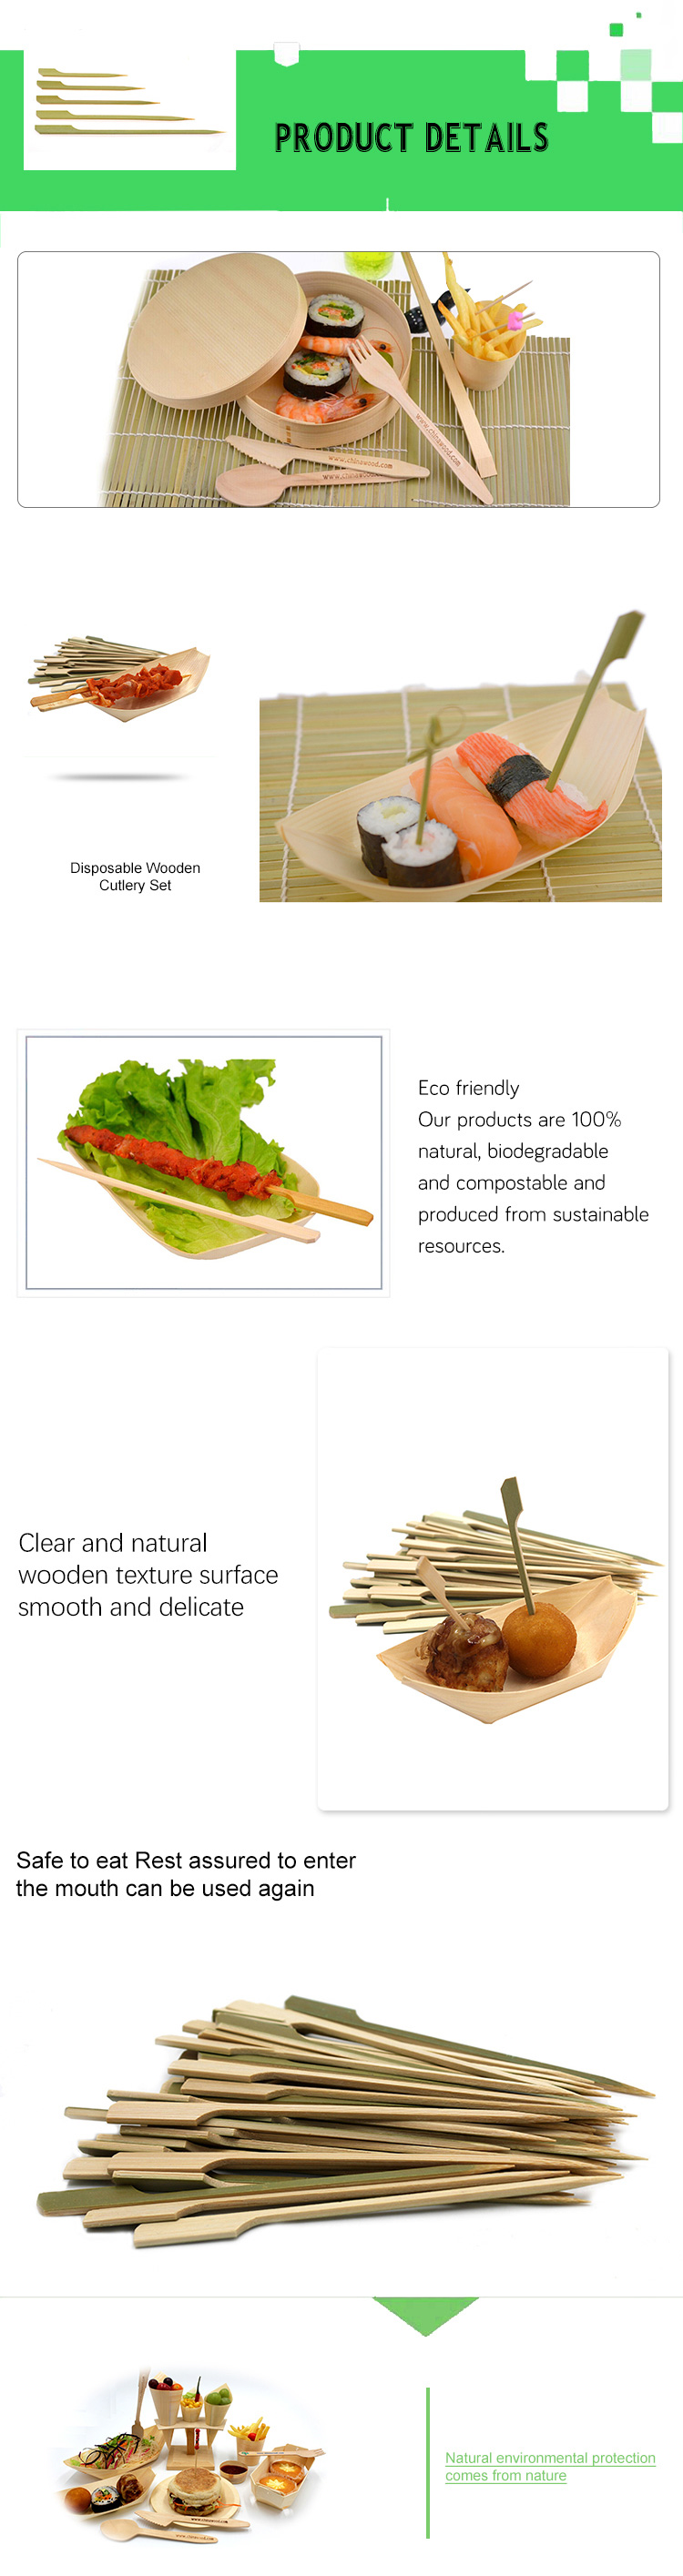 User-friendly design bamboo shish kabob Teppo Gushi-gun skewer